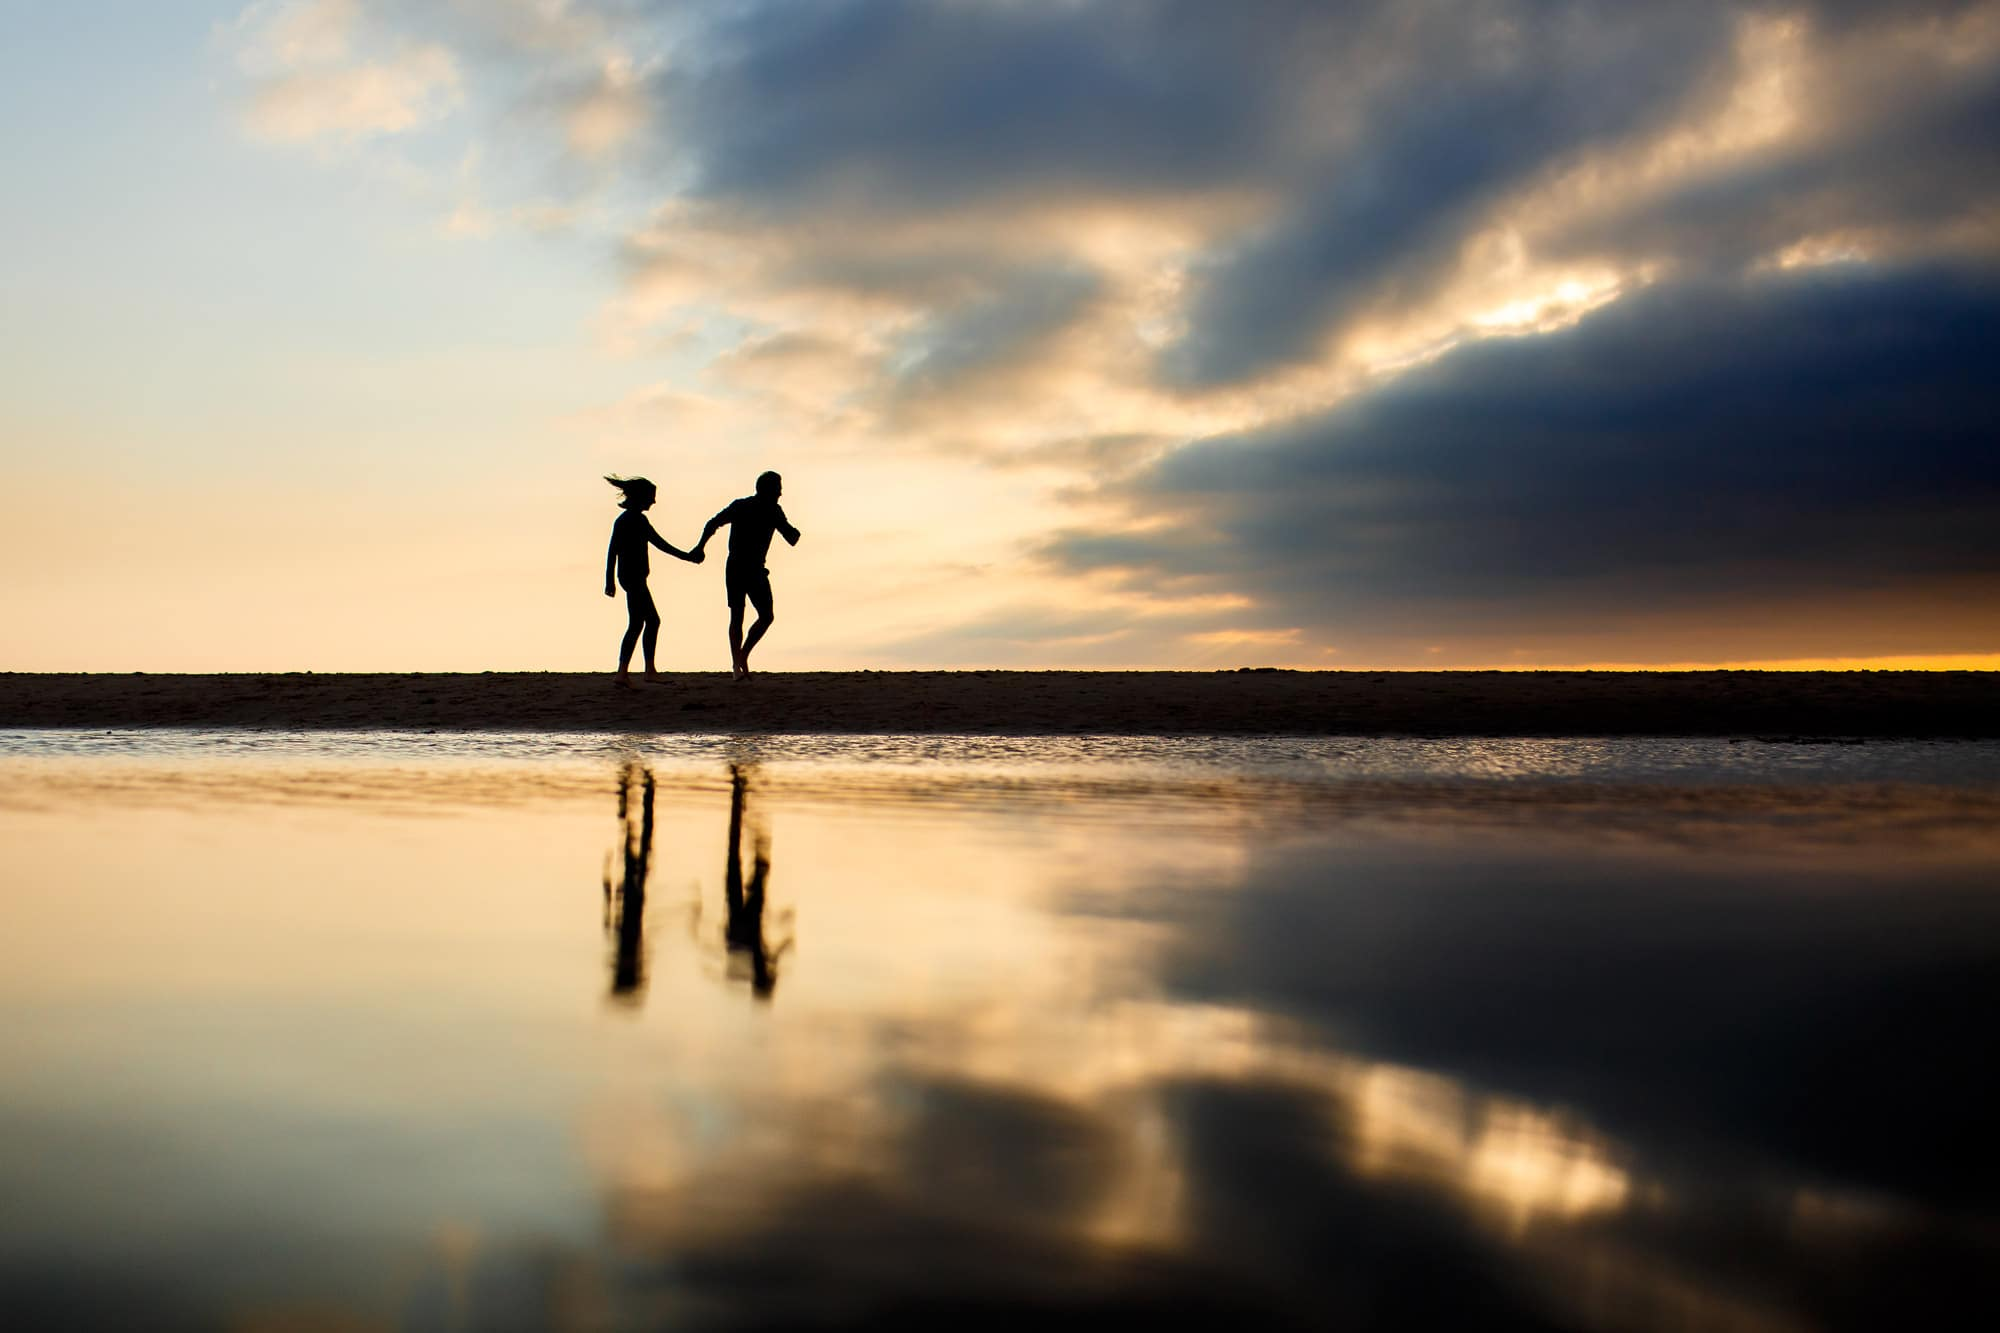 silhouette of couple running across the beach at sunset